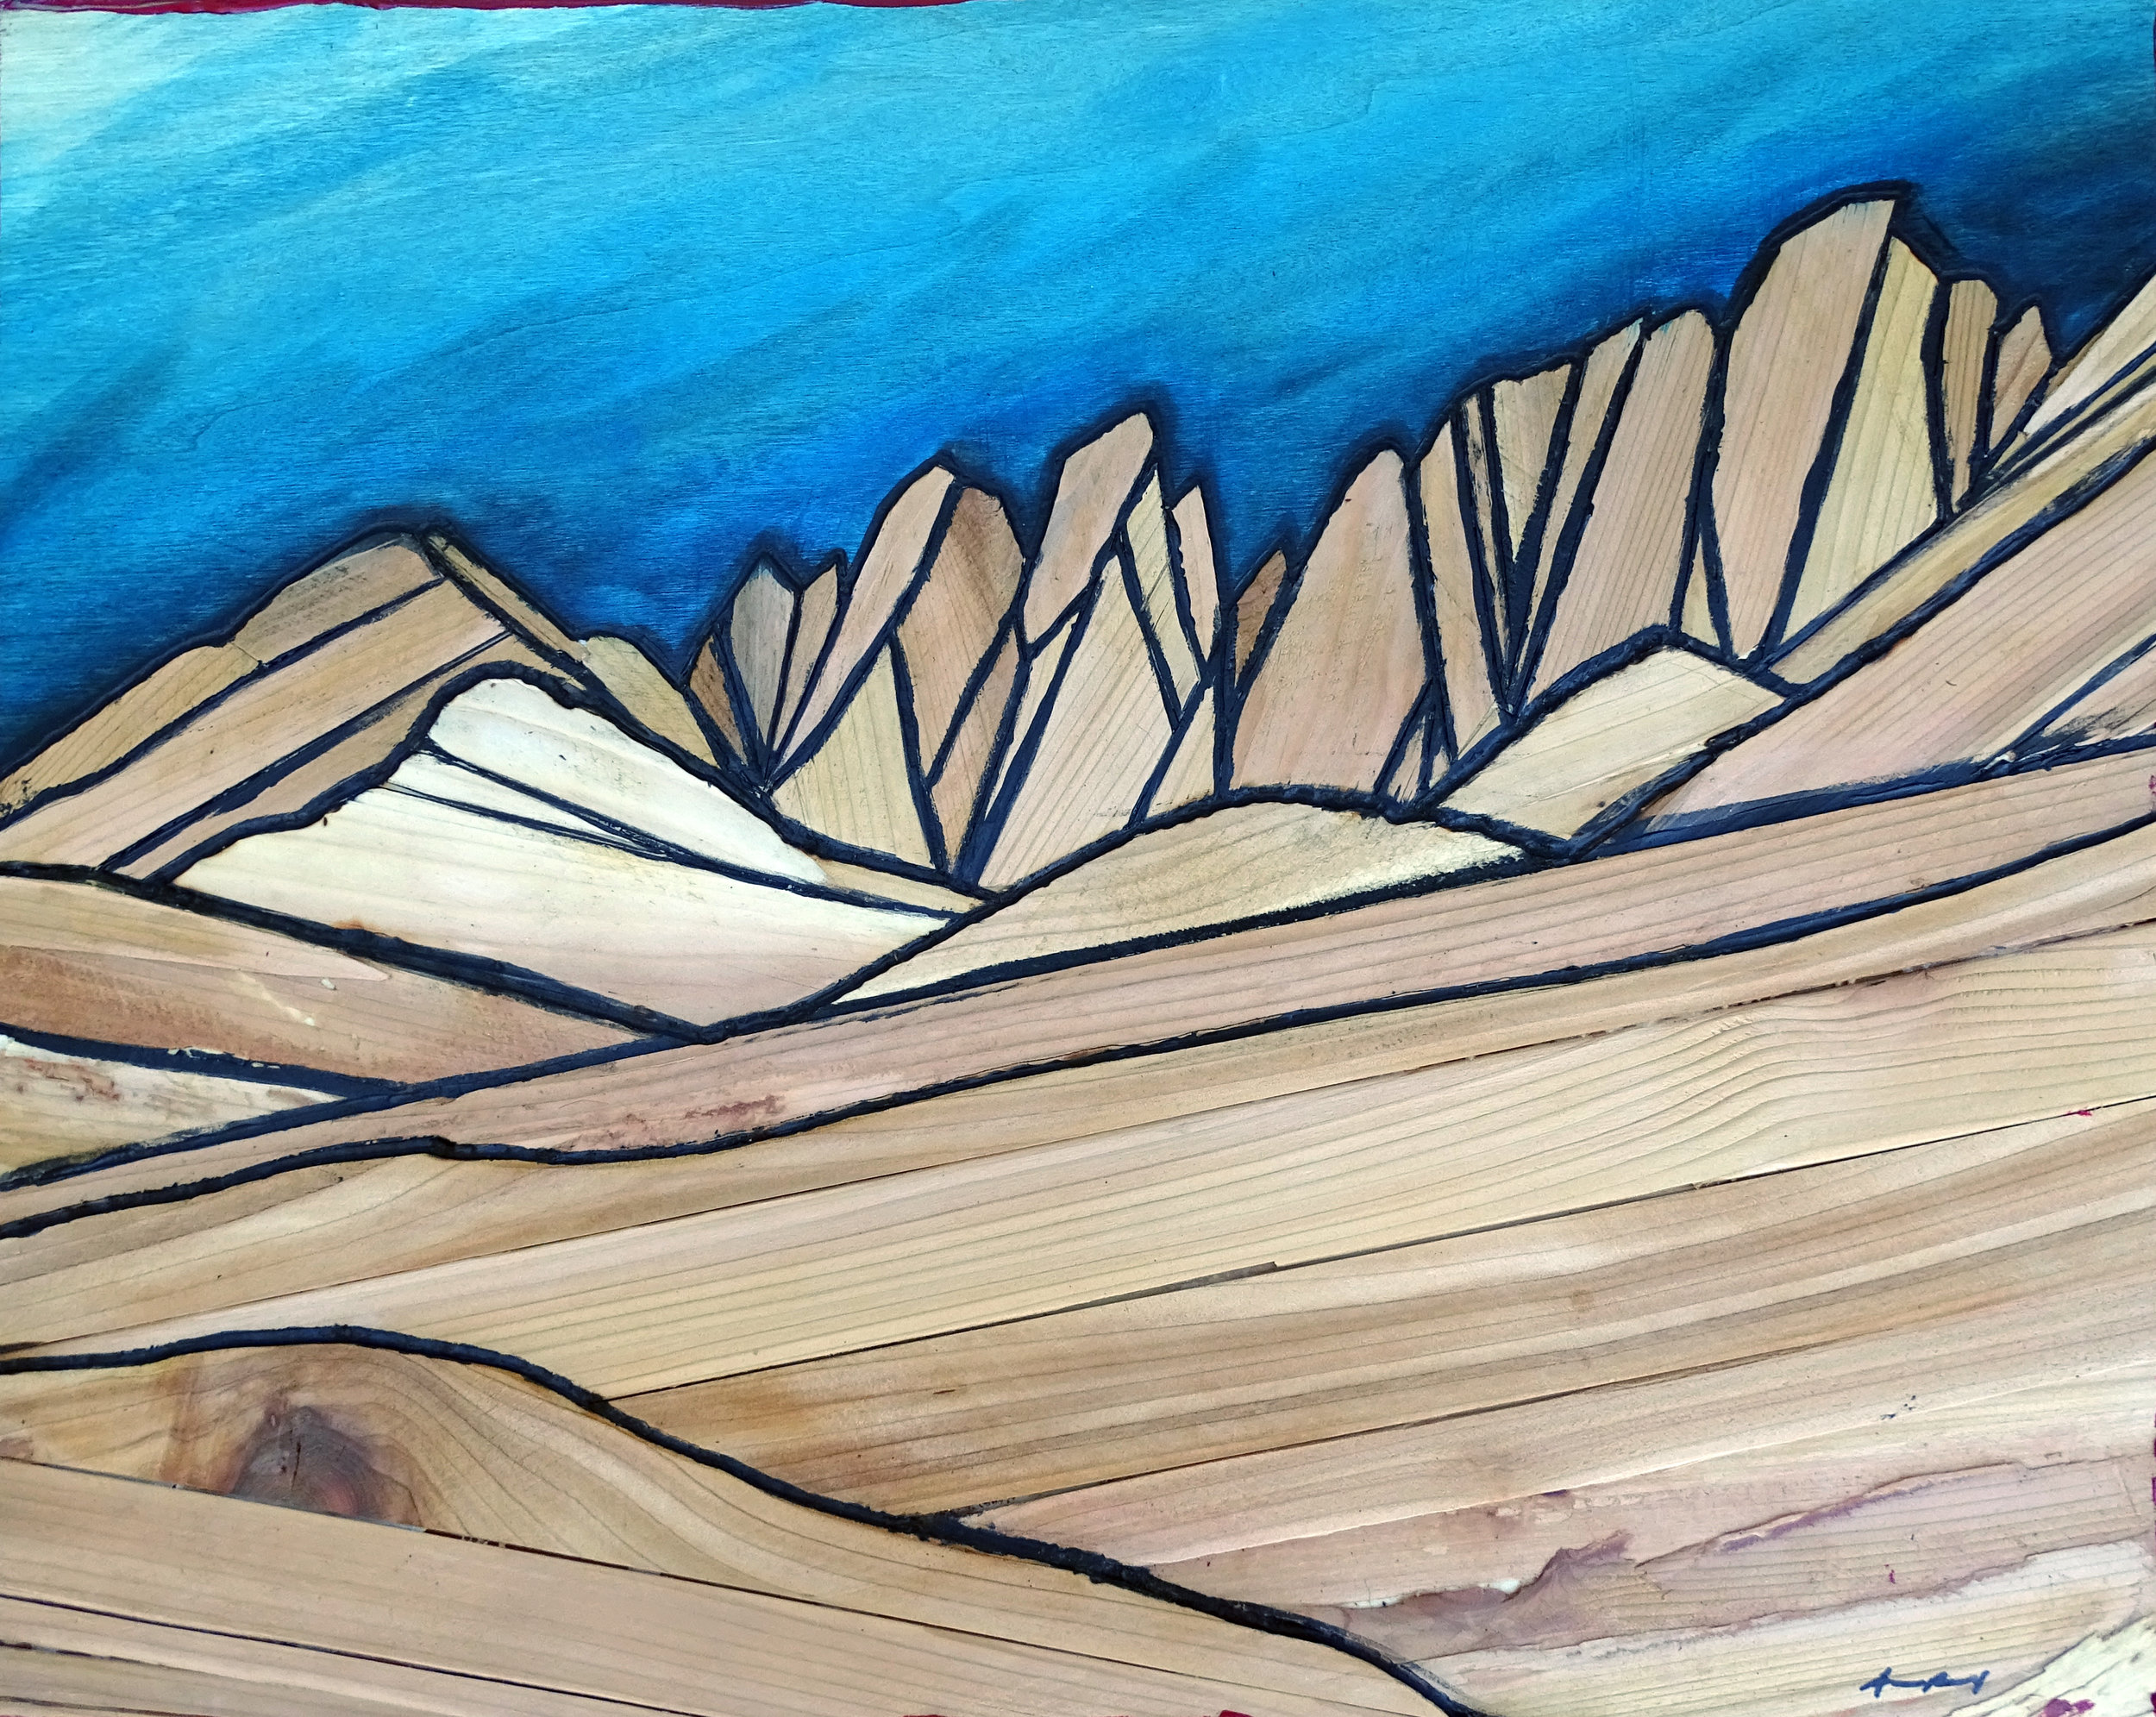 PAIUTE CRAGS   Sierra Nevada Wood Mosaic